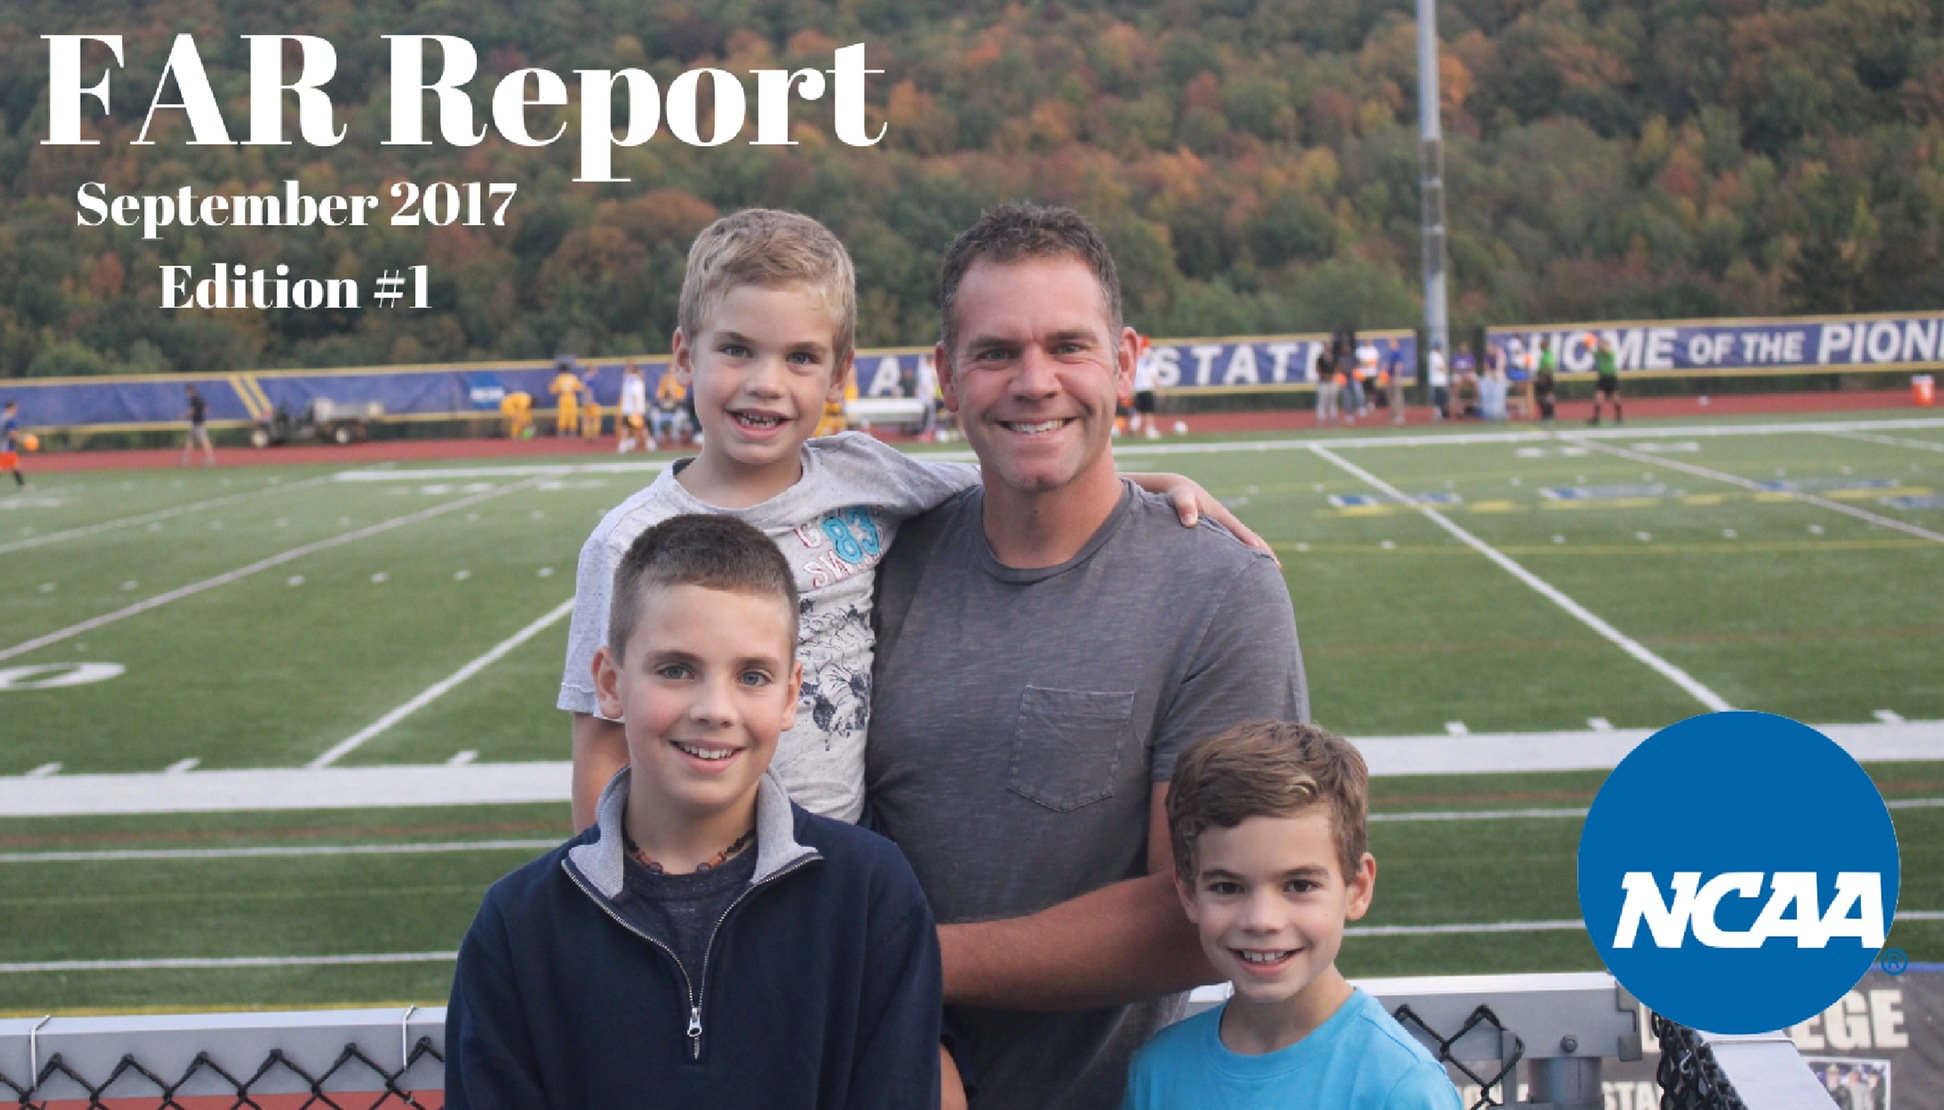 Faculty Athletic Rep Report